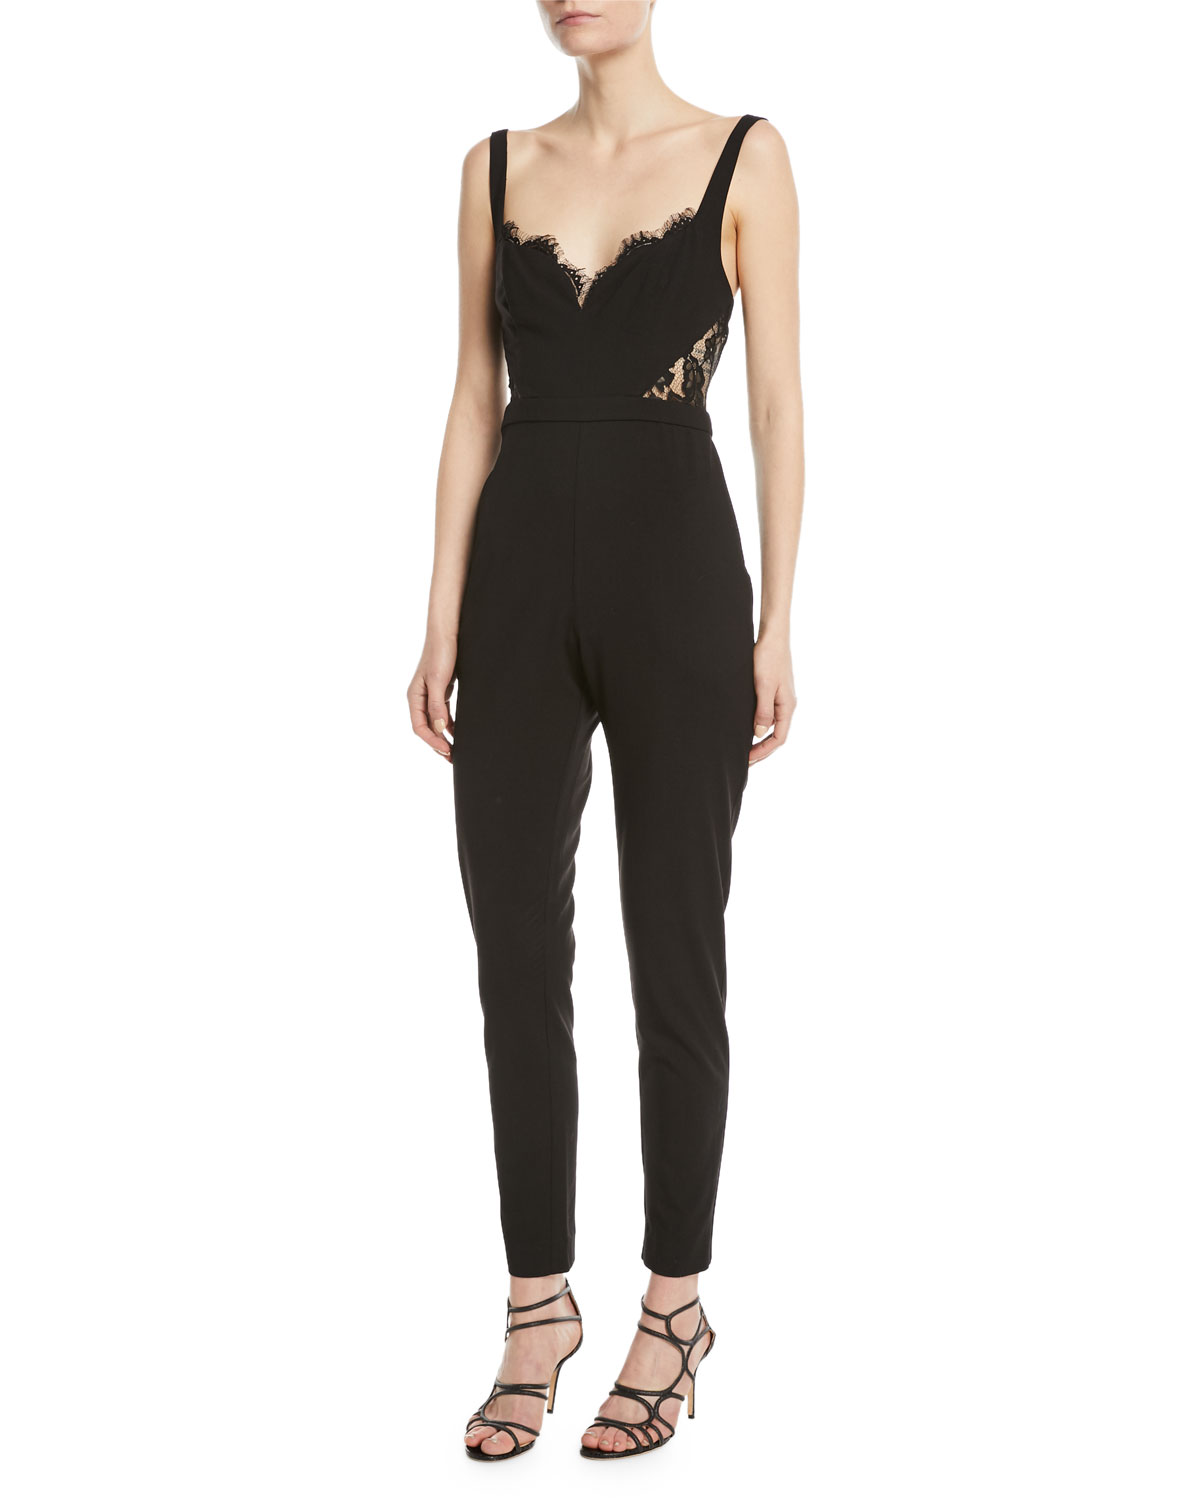 Fame And Partners The Millie Lace Side Cami Top Fitted Jumpsuit